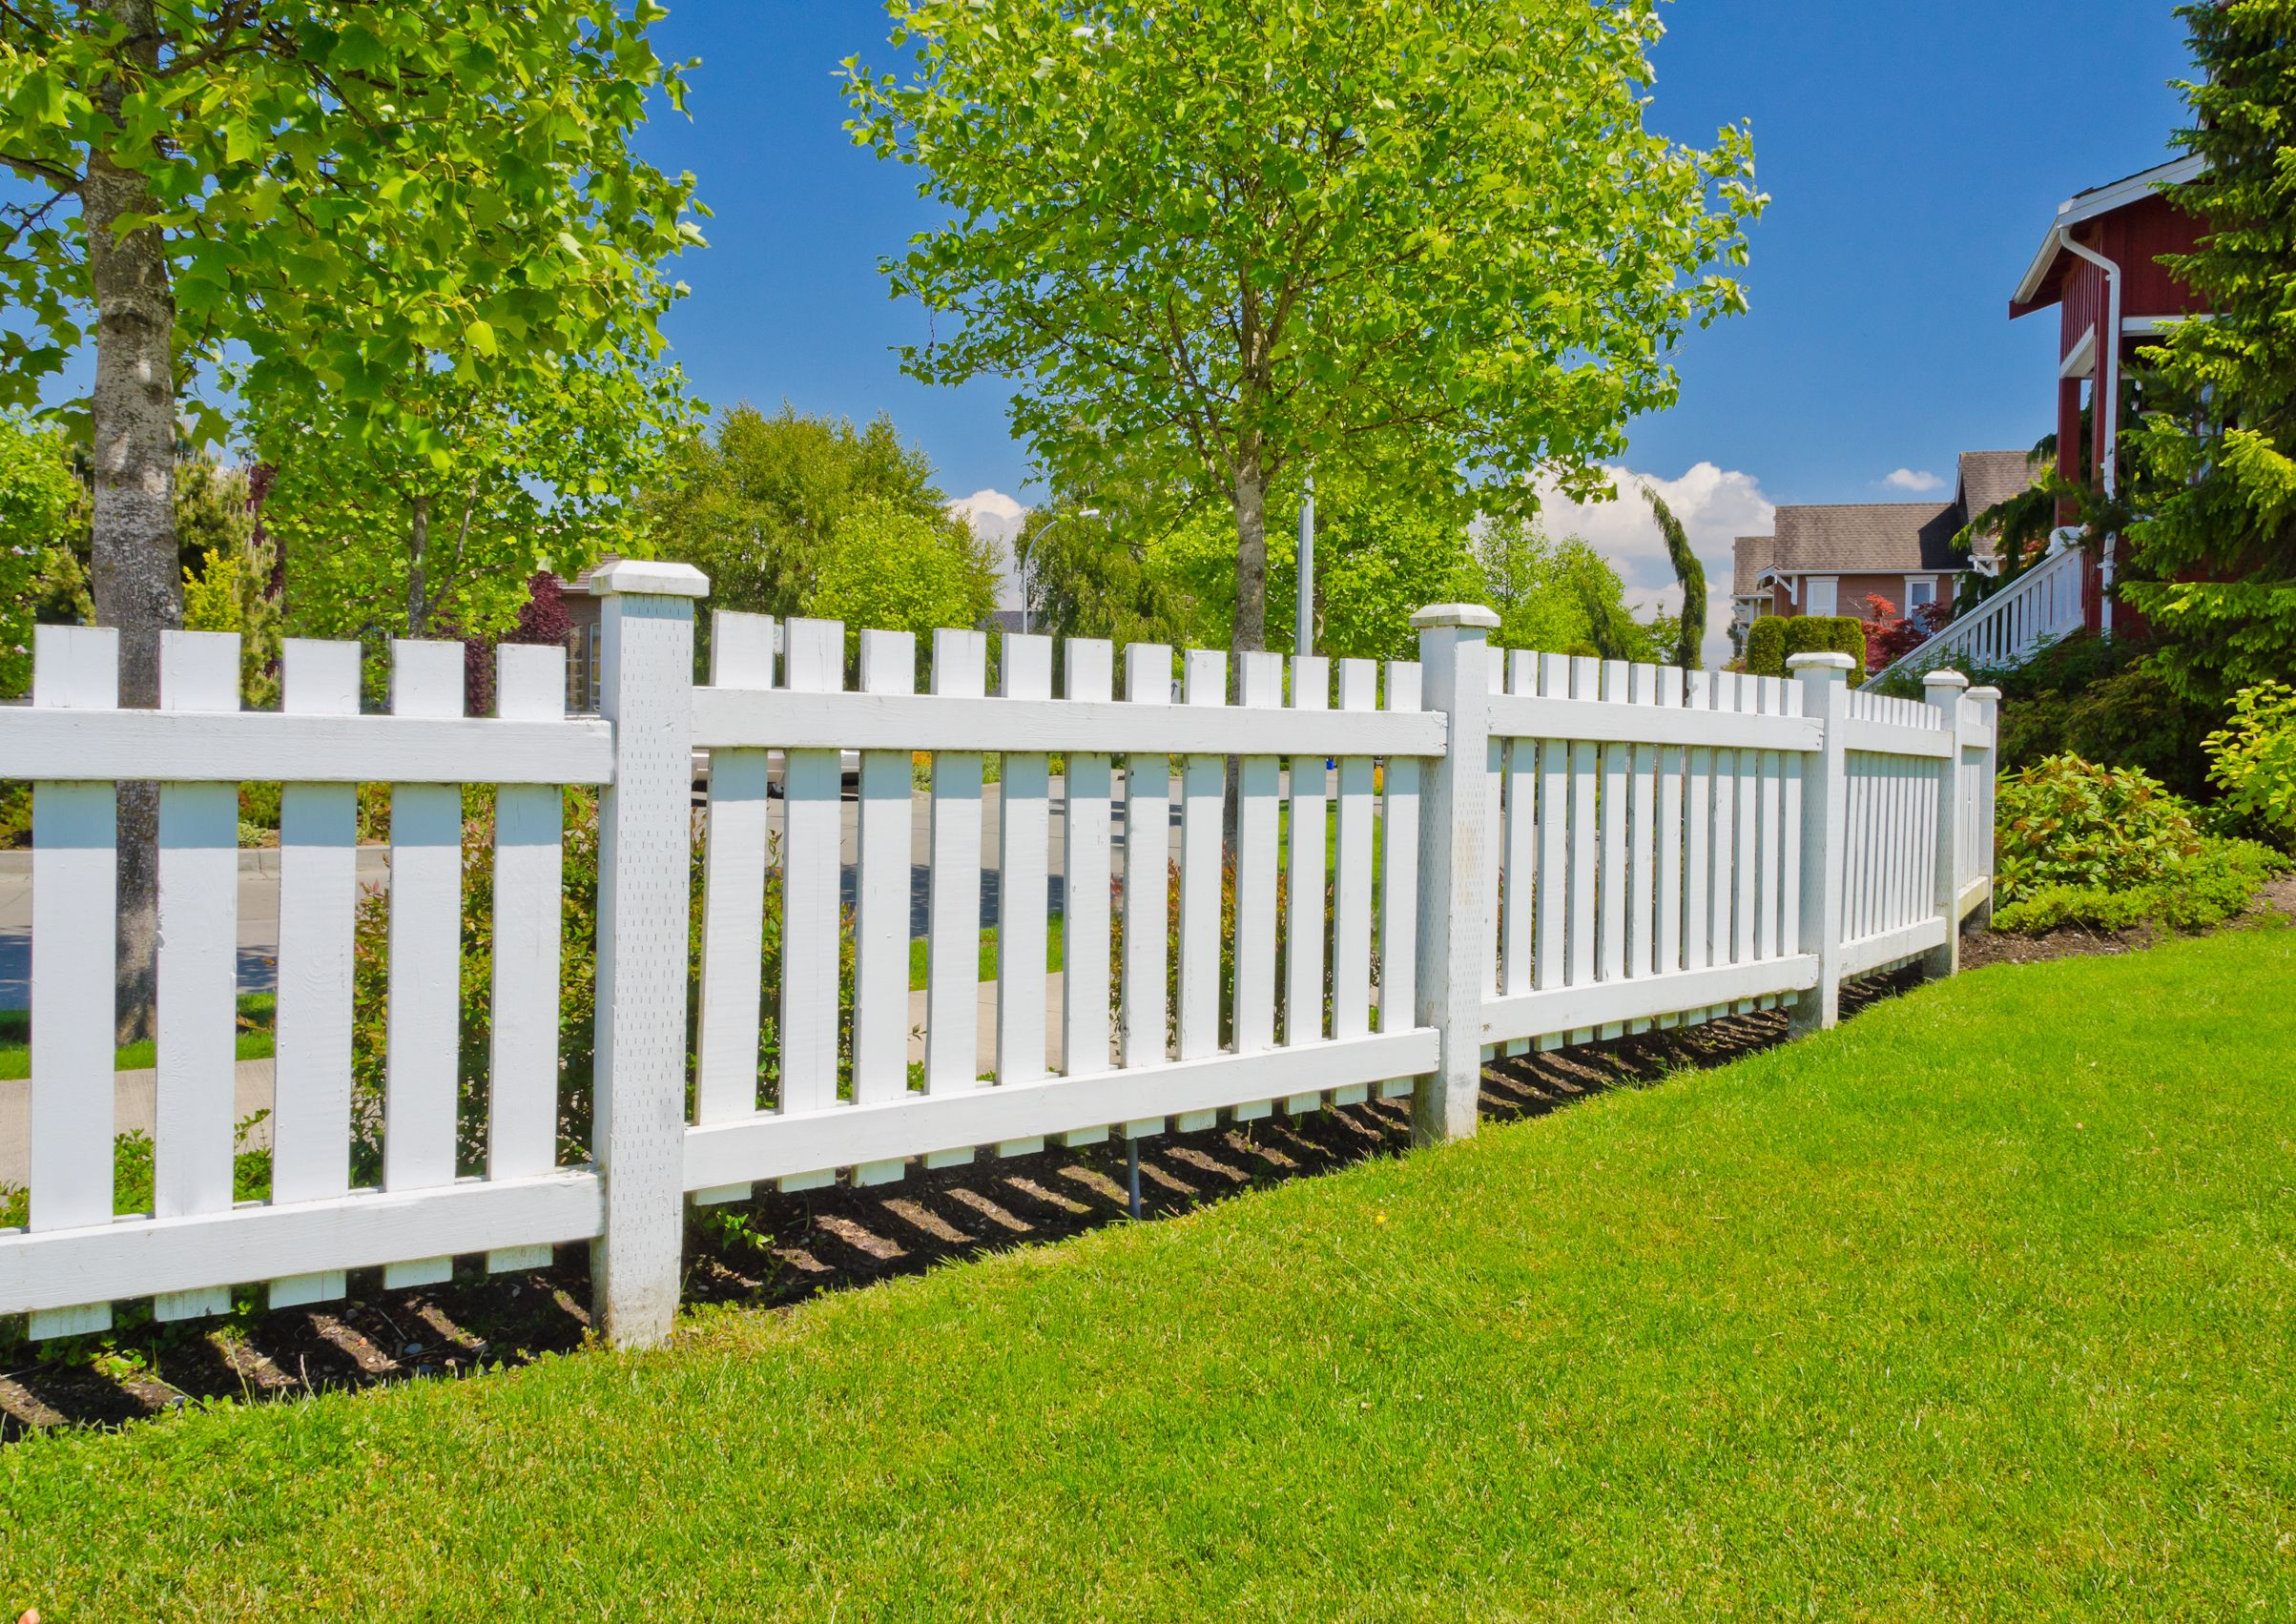 Types Of Garden Fencing Ideas Part - 22: Who Is Your Neighbor?